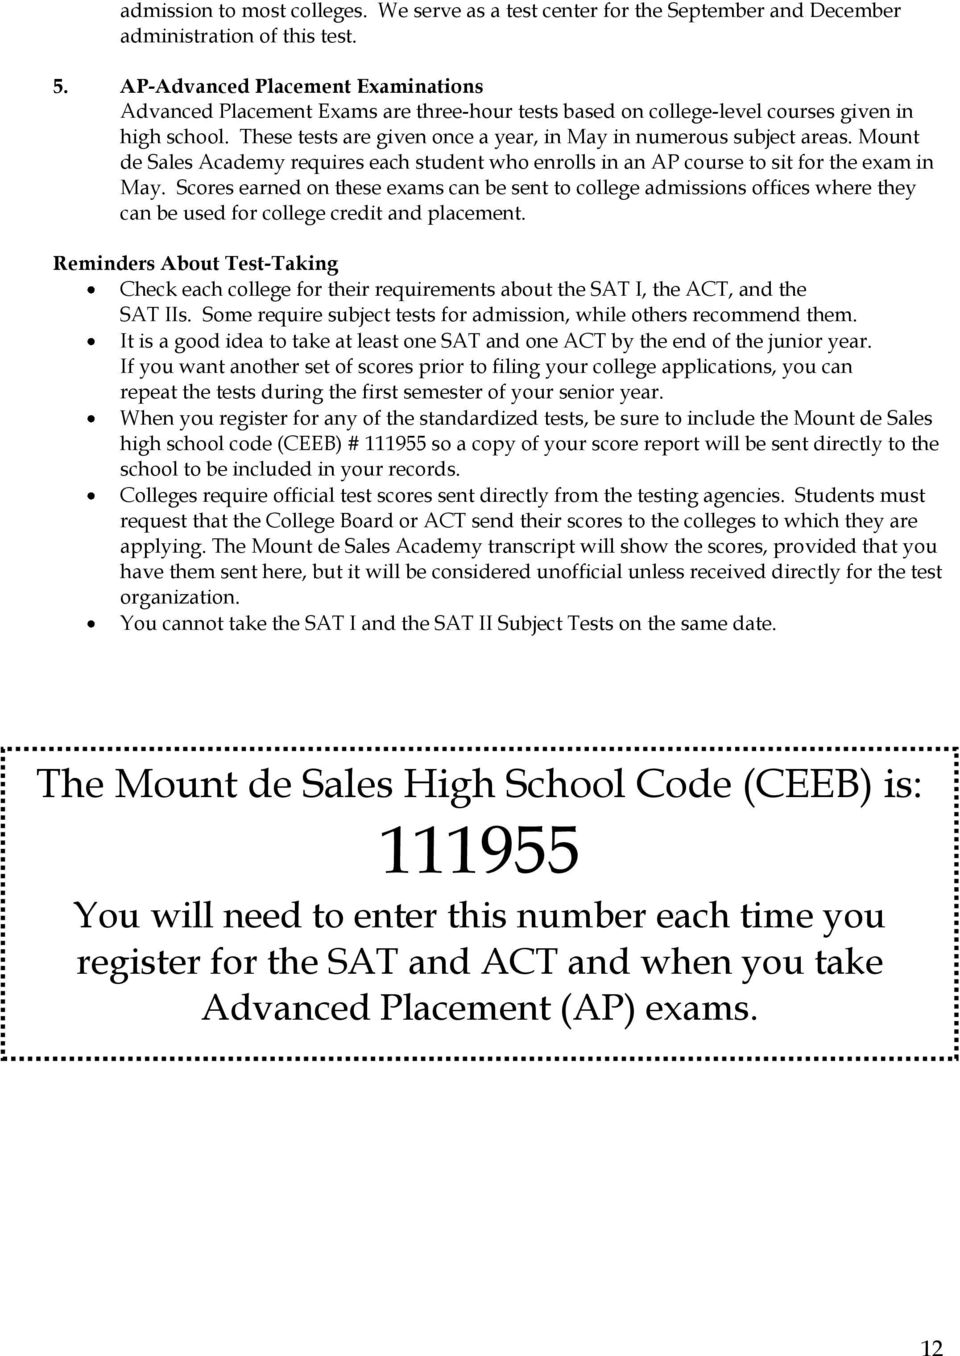 These tests are given once a year, in May in numerous subject areas. Mount de Sales Academy requires each student who enrolls in an AP course to sit for the exam in May.